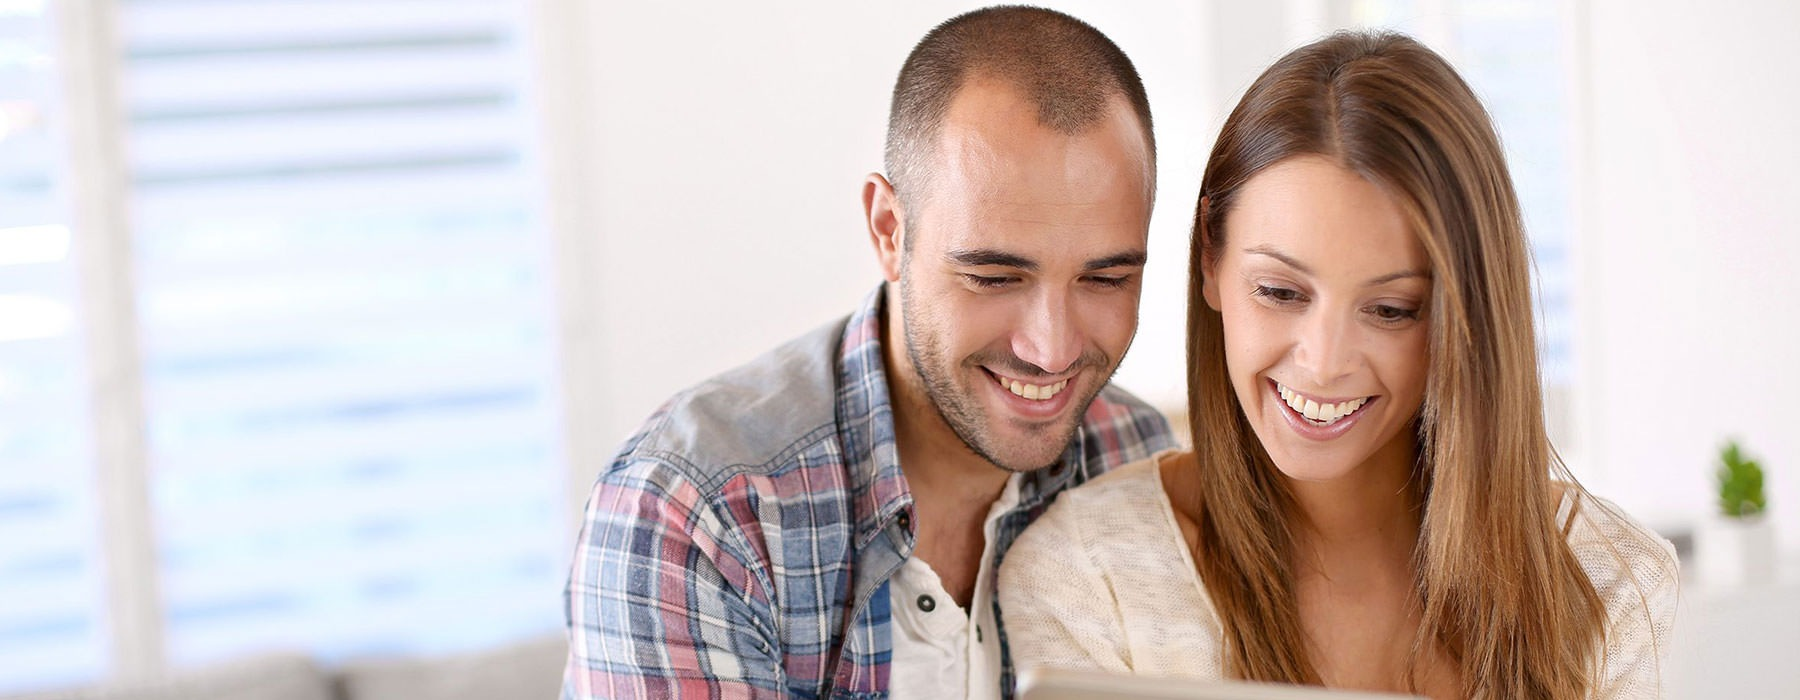 lifestyle image of a couple looking at a smart tablet together